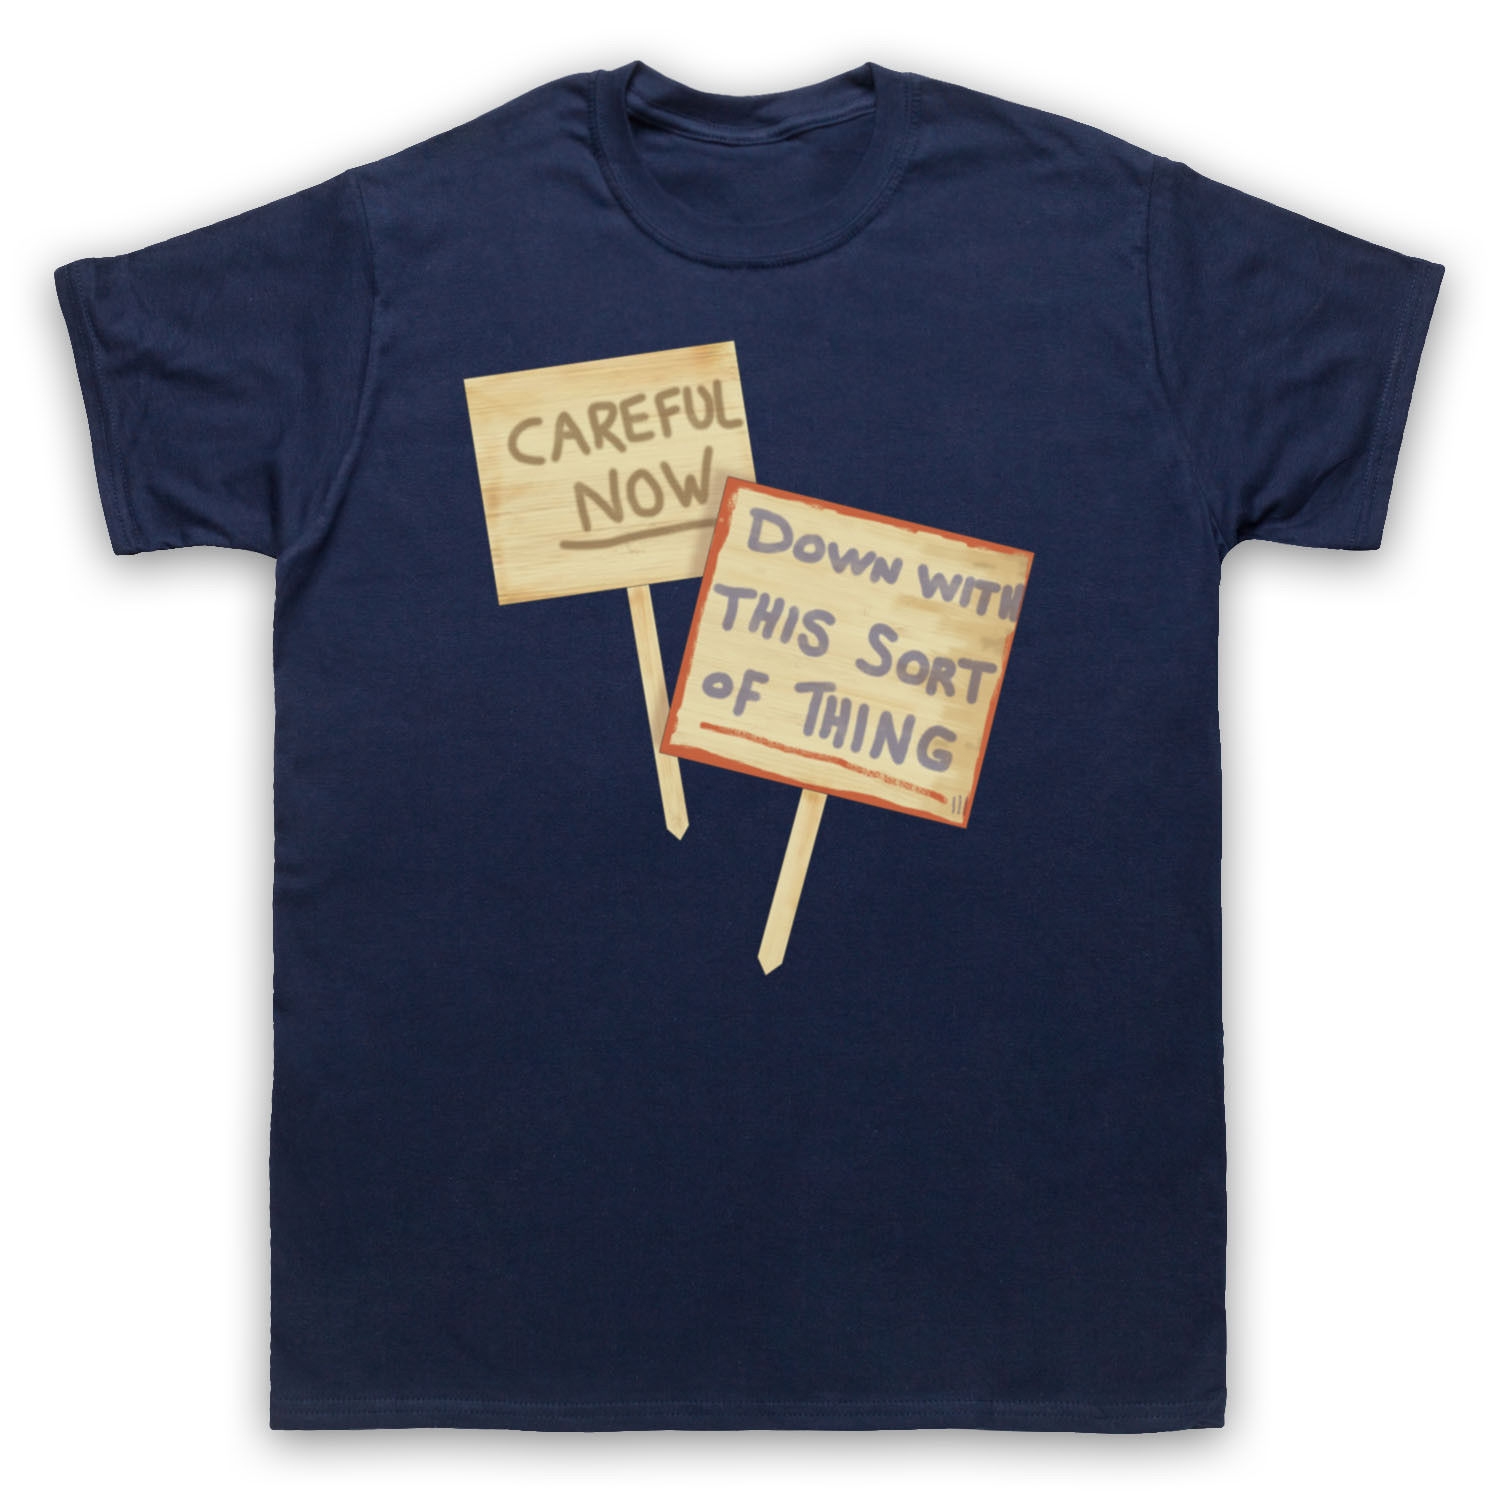 FATHER TED DOWN WITH THIS SORT OF THING CAREFUL NOW ADULTS & KIDS T-SHIRT